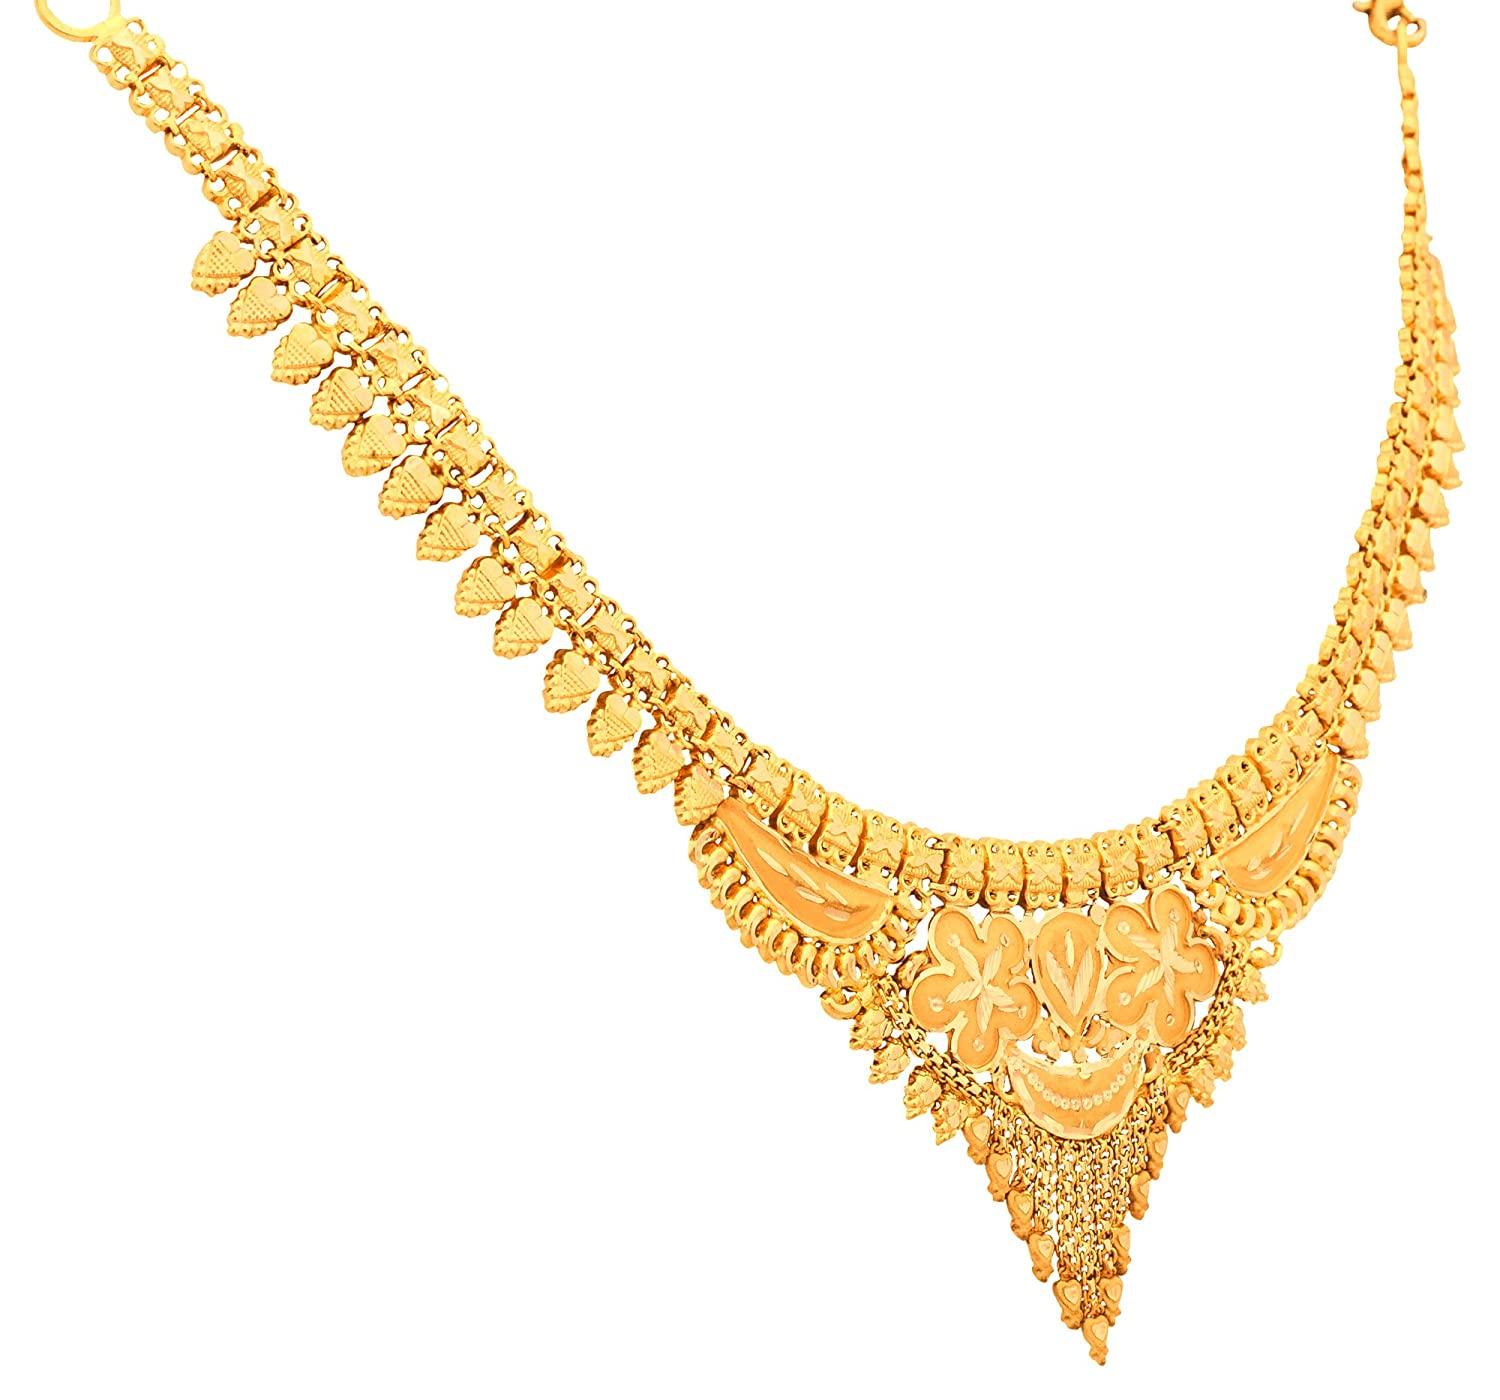 plated women fashion product rolo necklace jewelry link chain gold store yellow for white inch